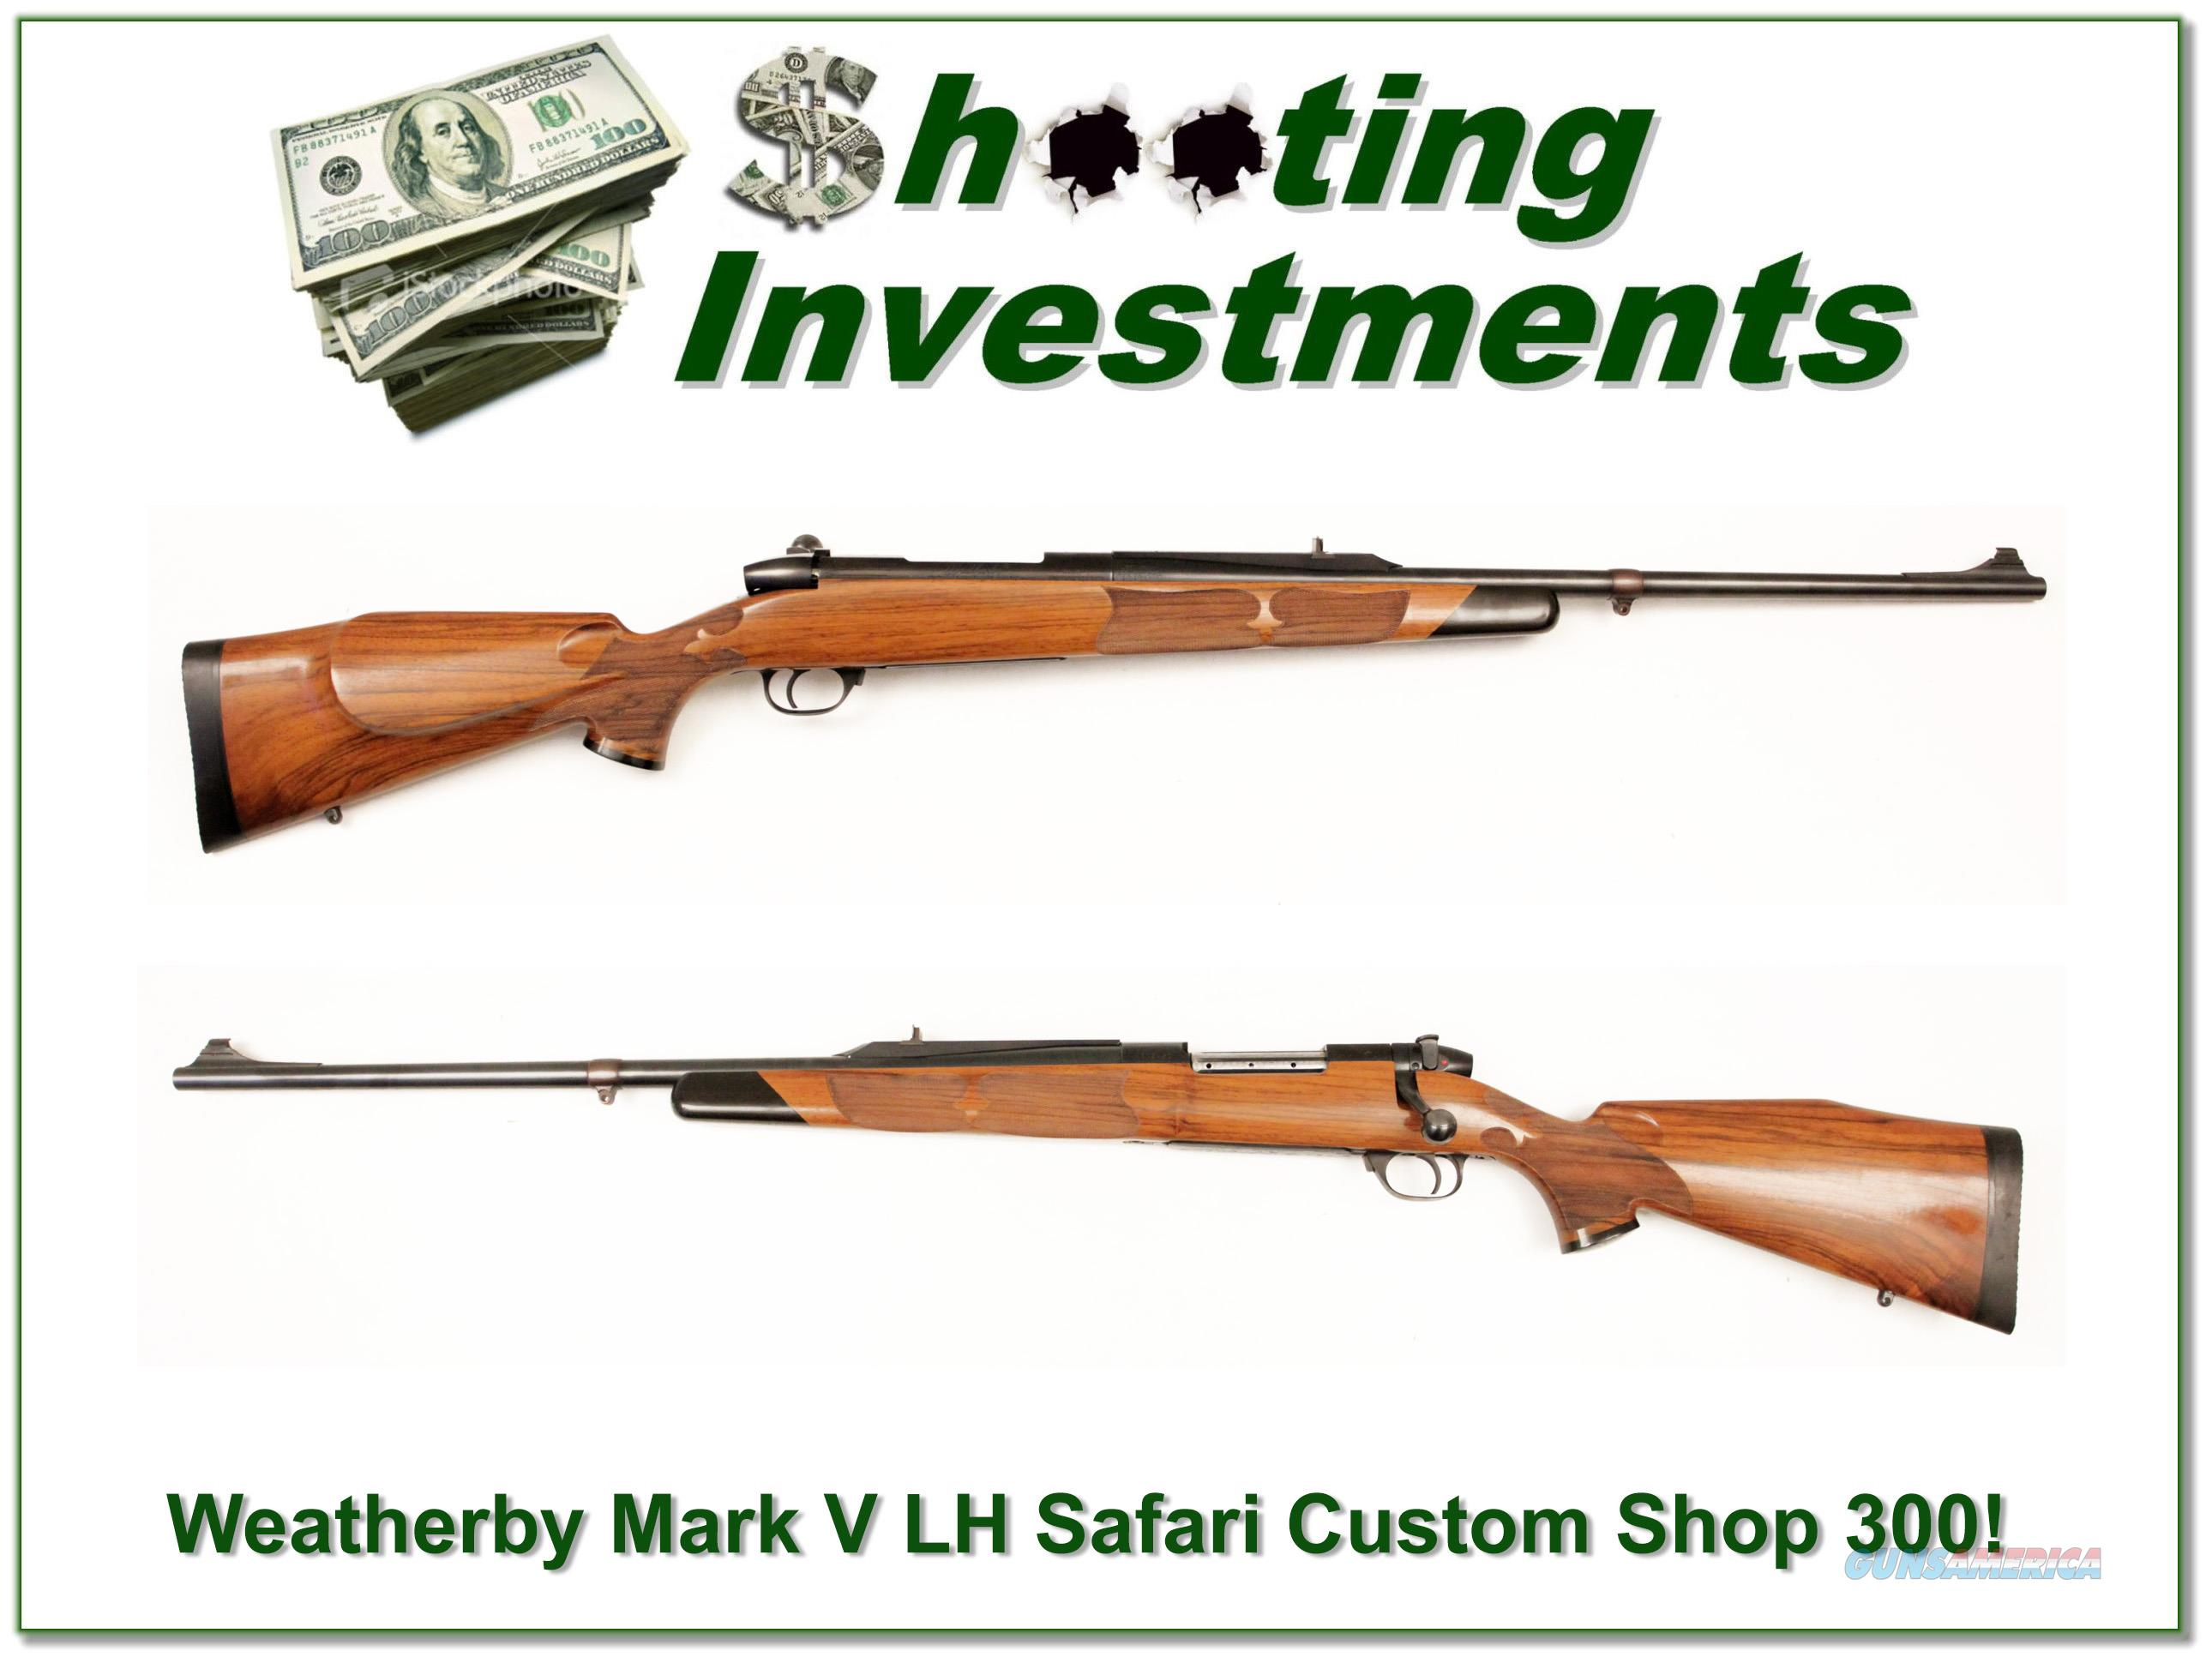 Weatherby Mark V Safari Custom Shop LH 300!  Guns > Rifles > Weatherby Rifles > Sporting